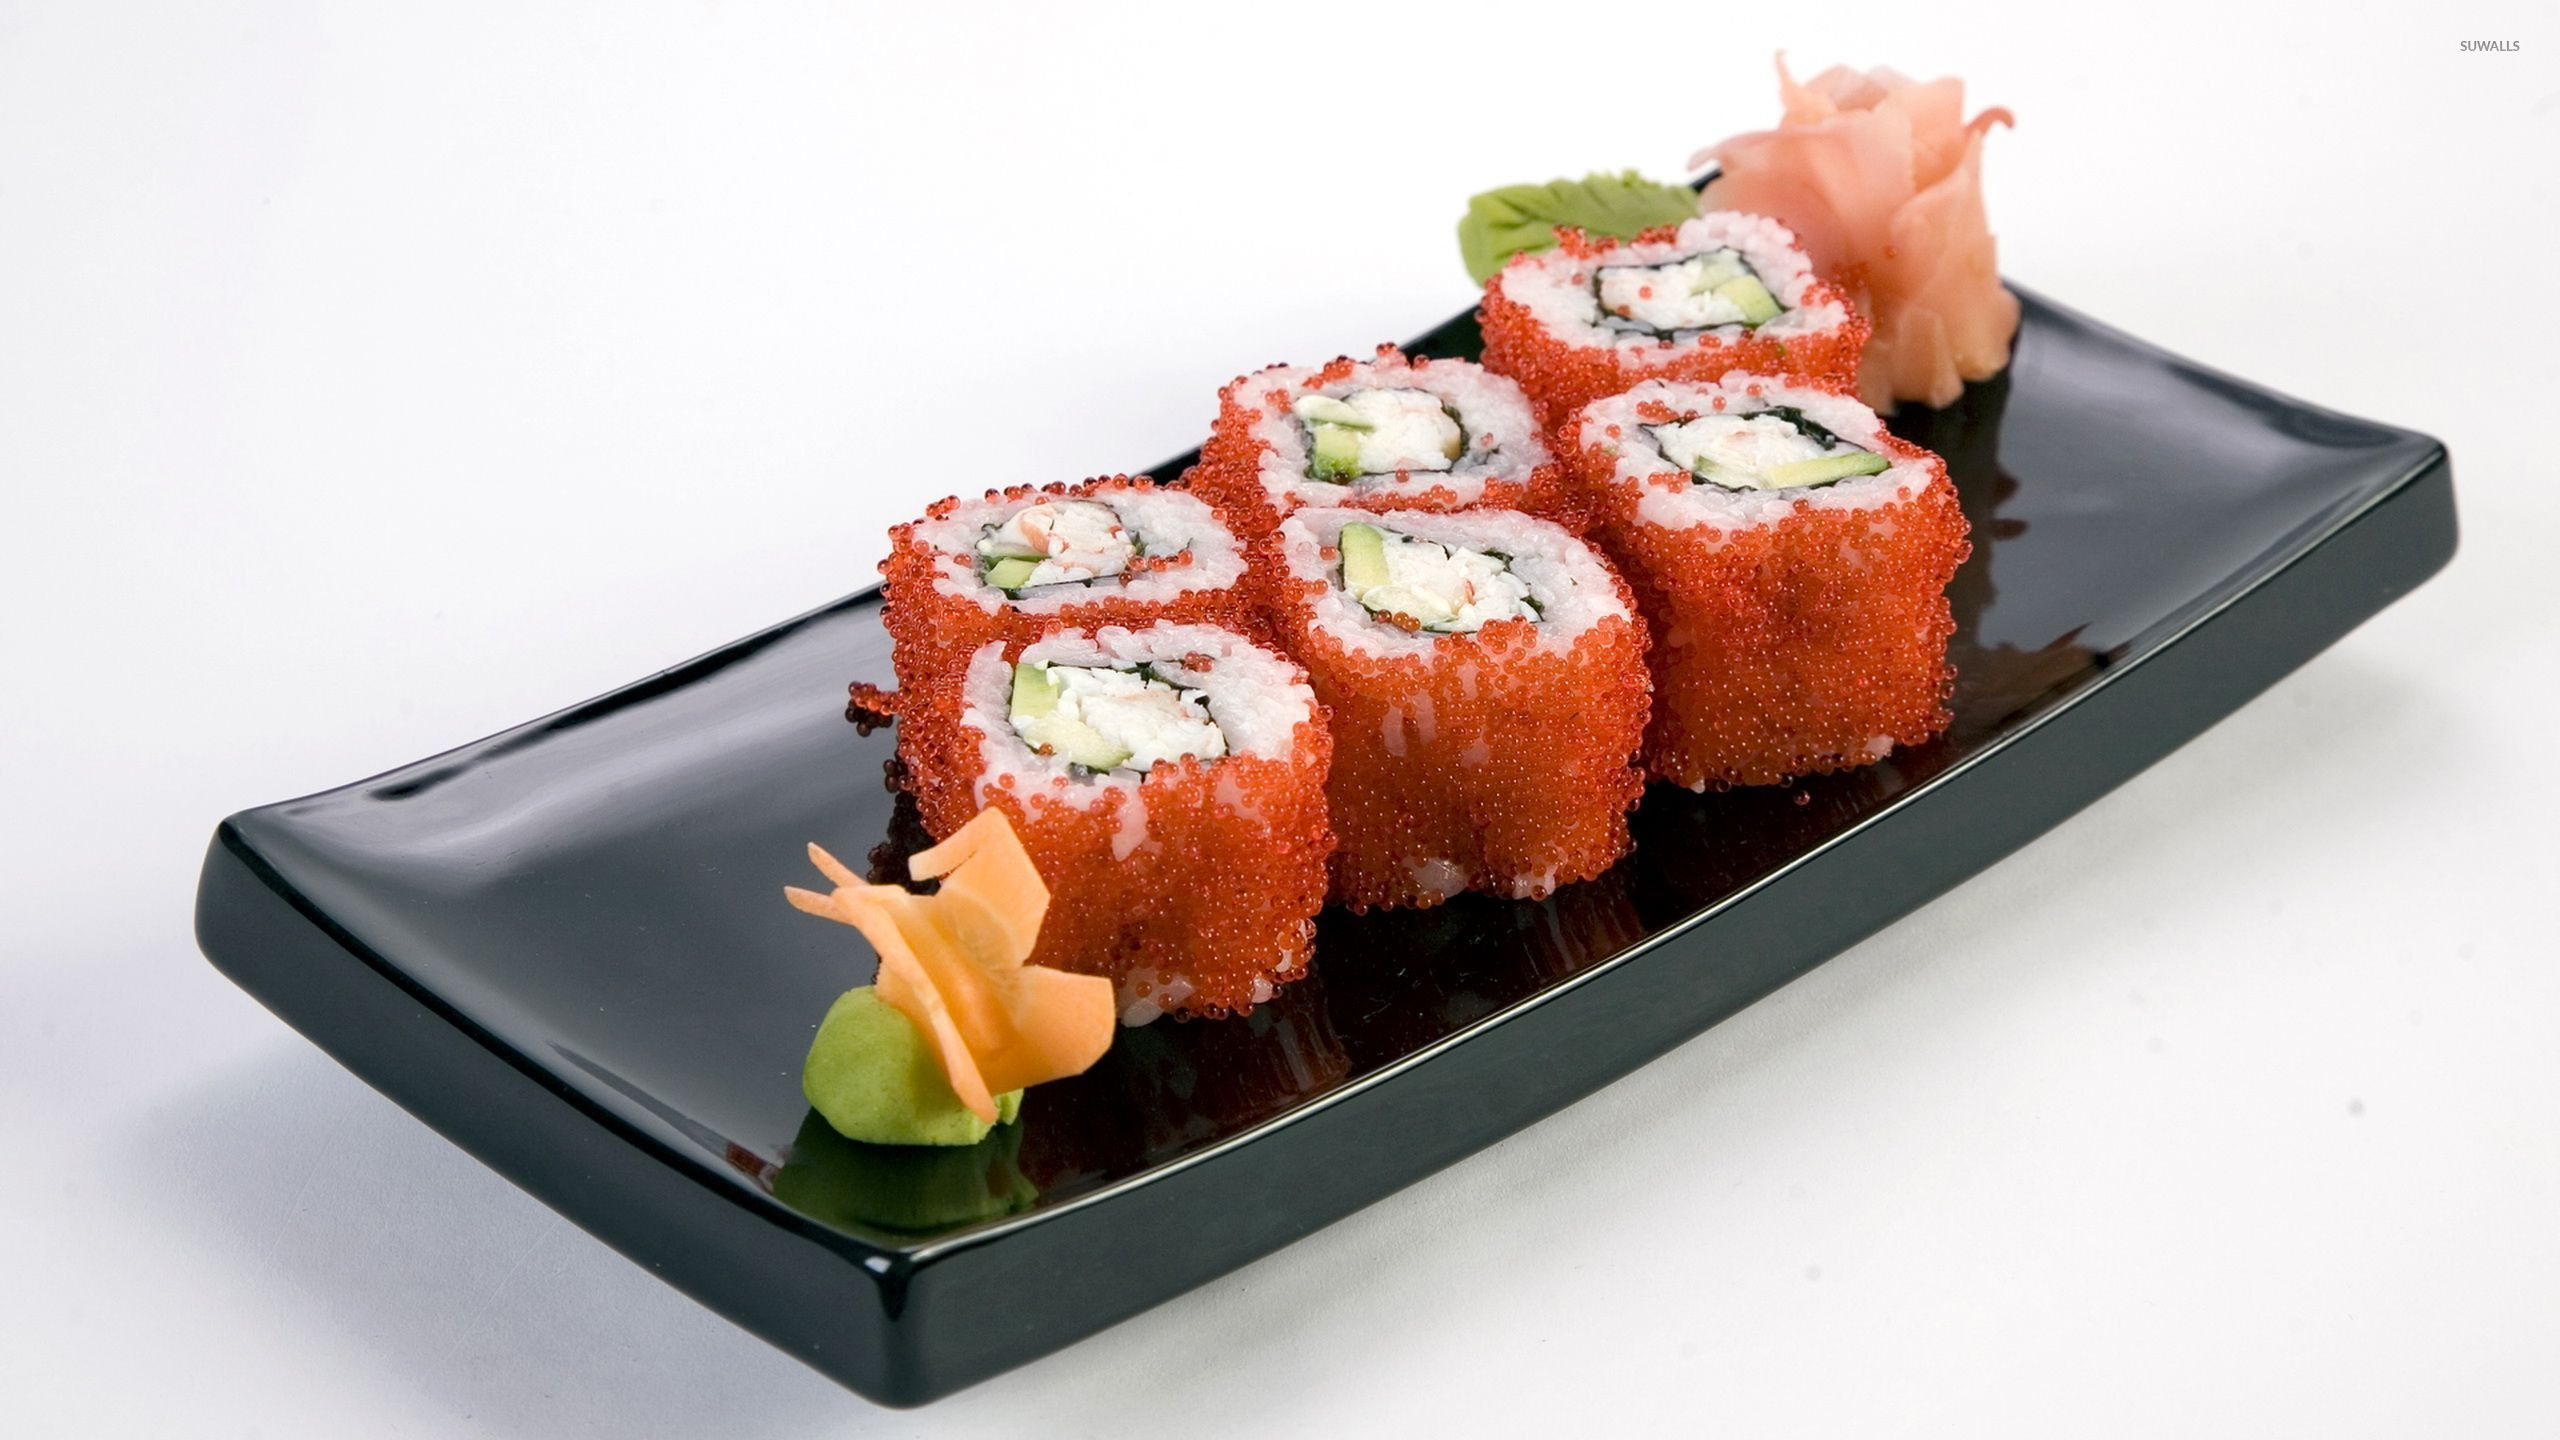 Sushi [5] wallpaper - Photography wallpapers - #32527